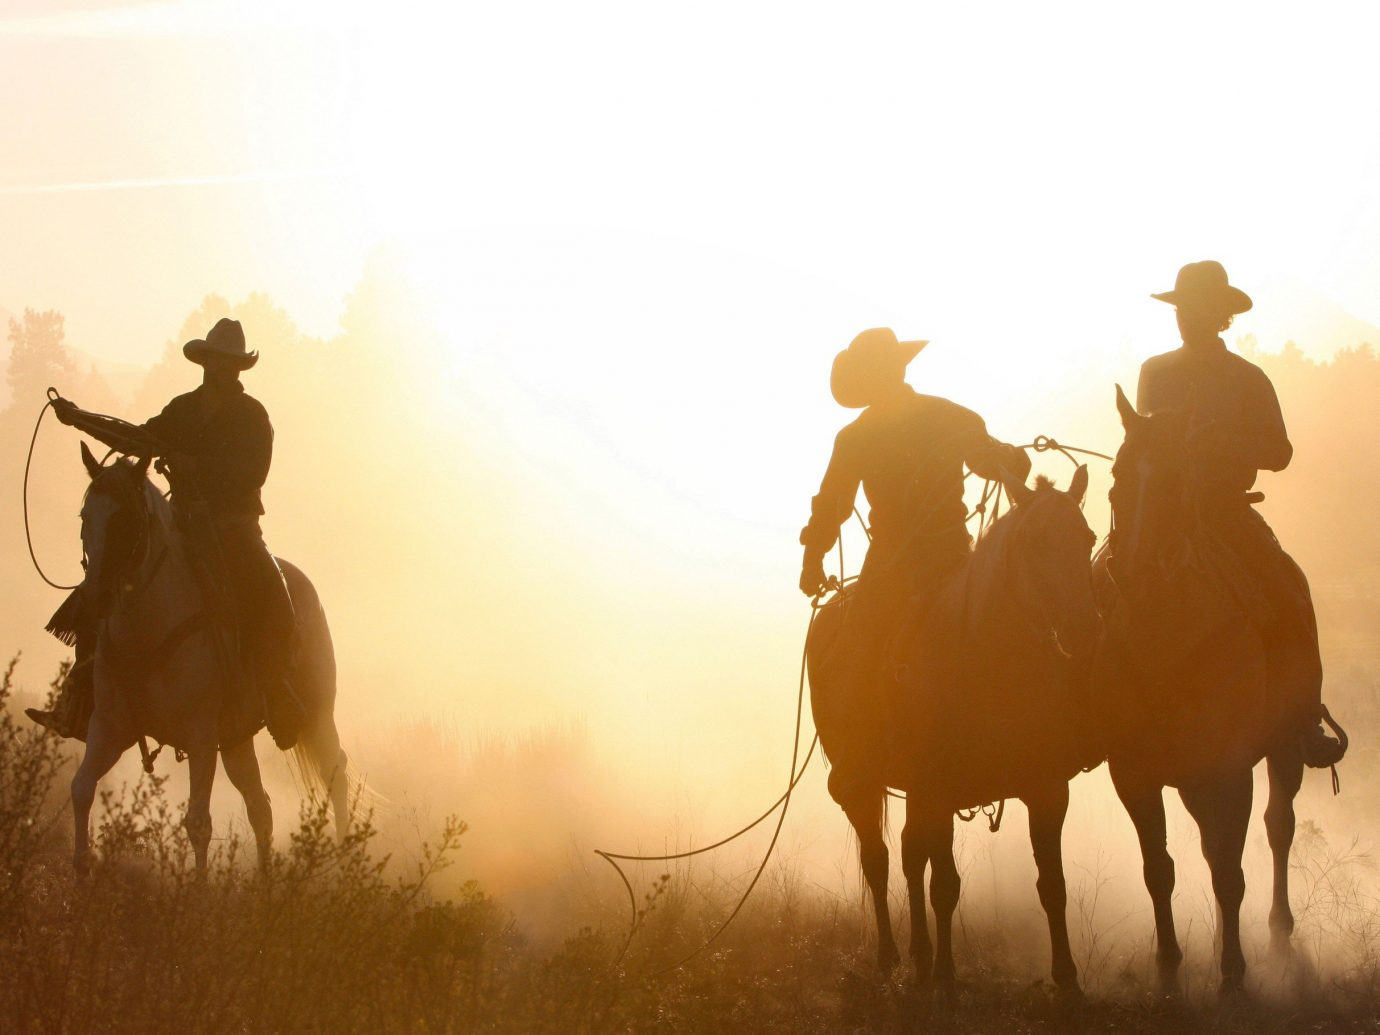 Outdoors + Adventure sky outdoor horse grass atmospheric phenomenon Sunset mustang horse morning herd silhouette animal sports cowboy clouds